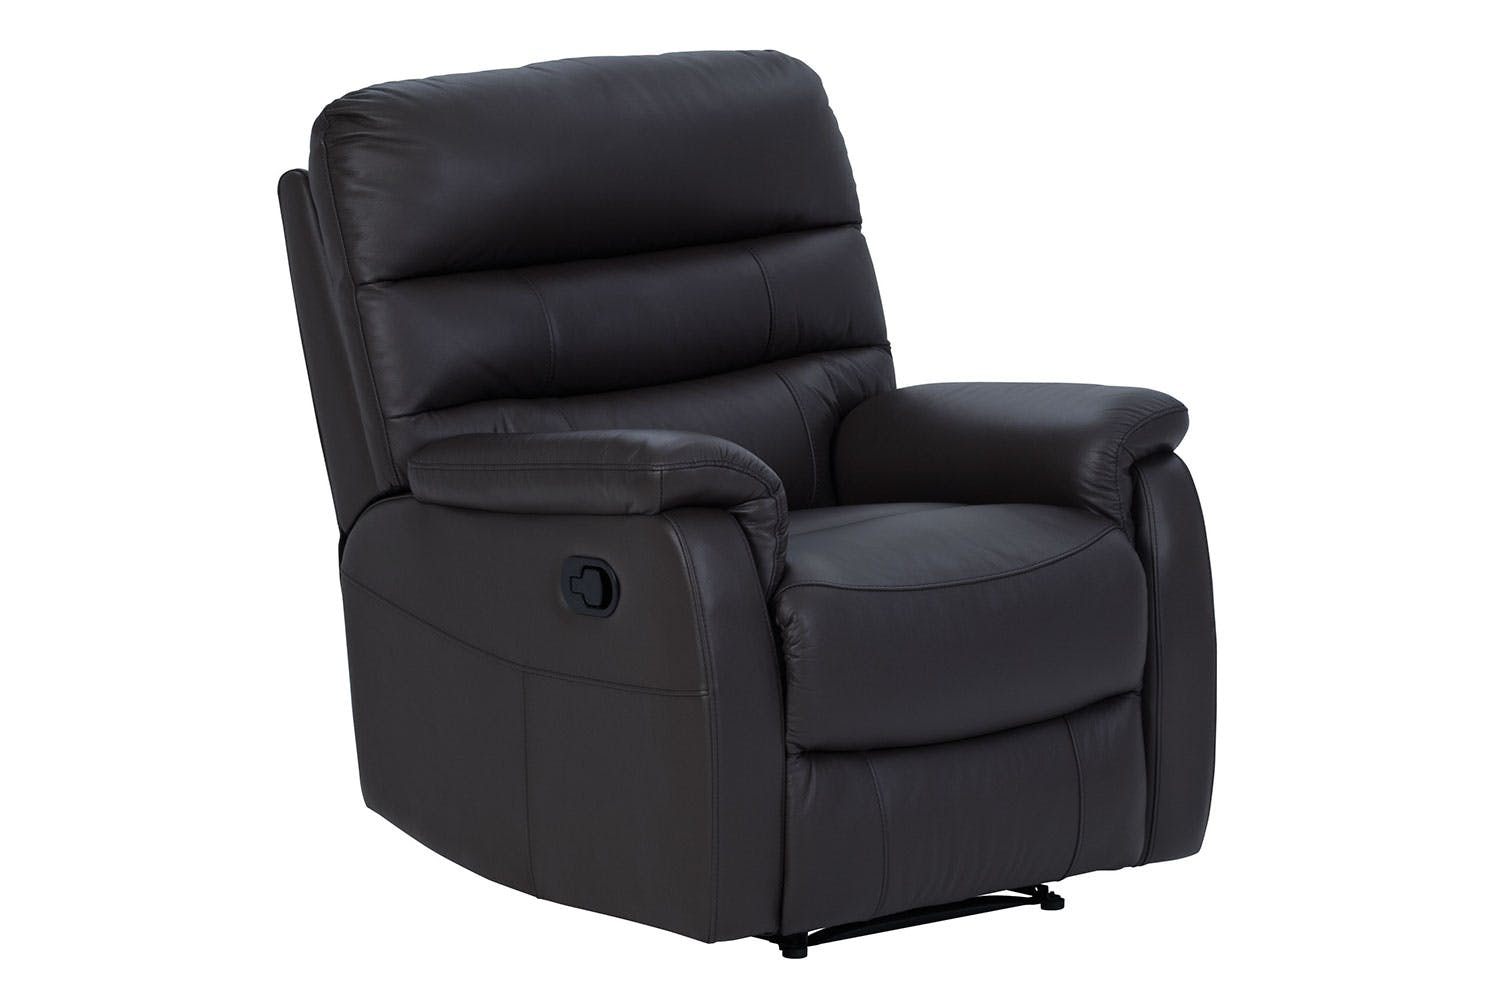 Lazy Boy Bedroom Furniture Recliner Chairs Lazy Boy Chairs Chair La Z Boy Harvey